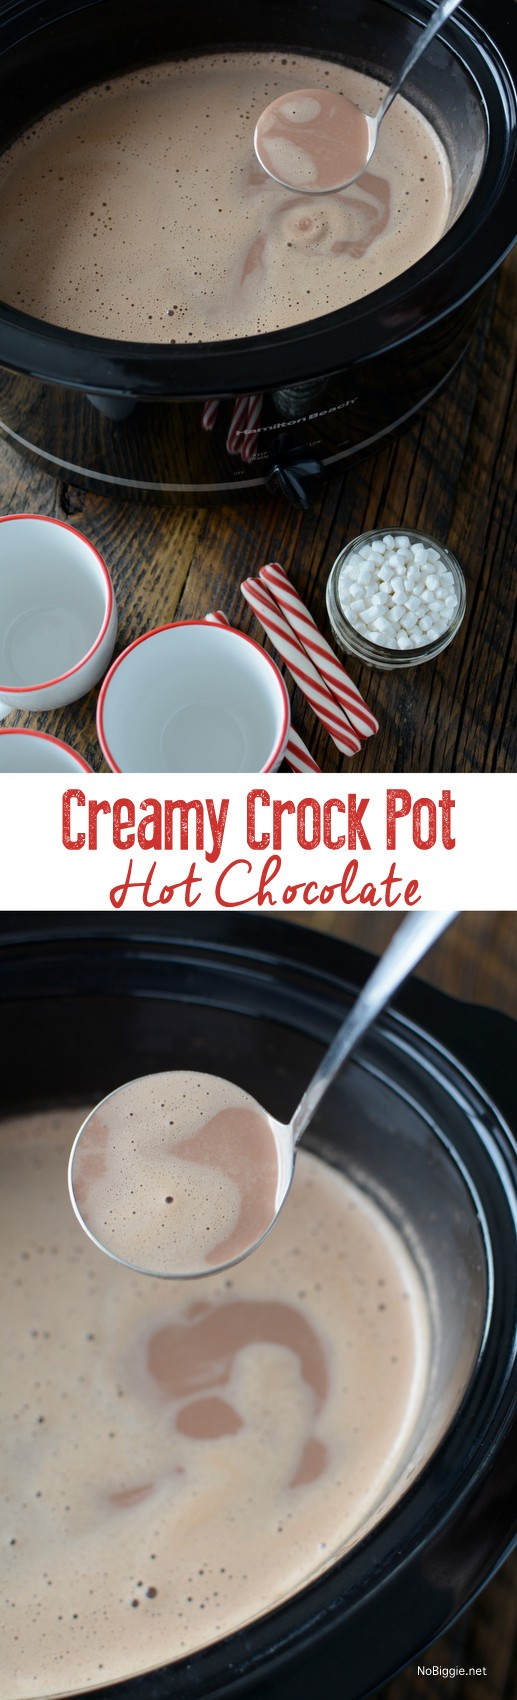 Creamy crockpot hot chocolate a must have for the holiday season! # hotchocolate #crockpothotchocolate